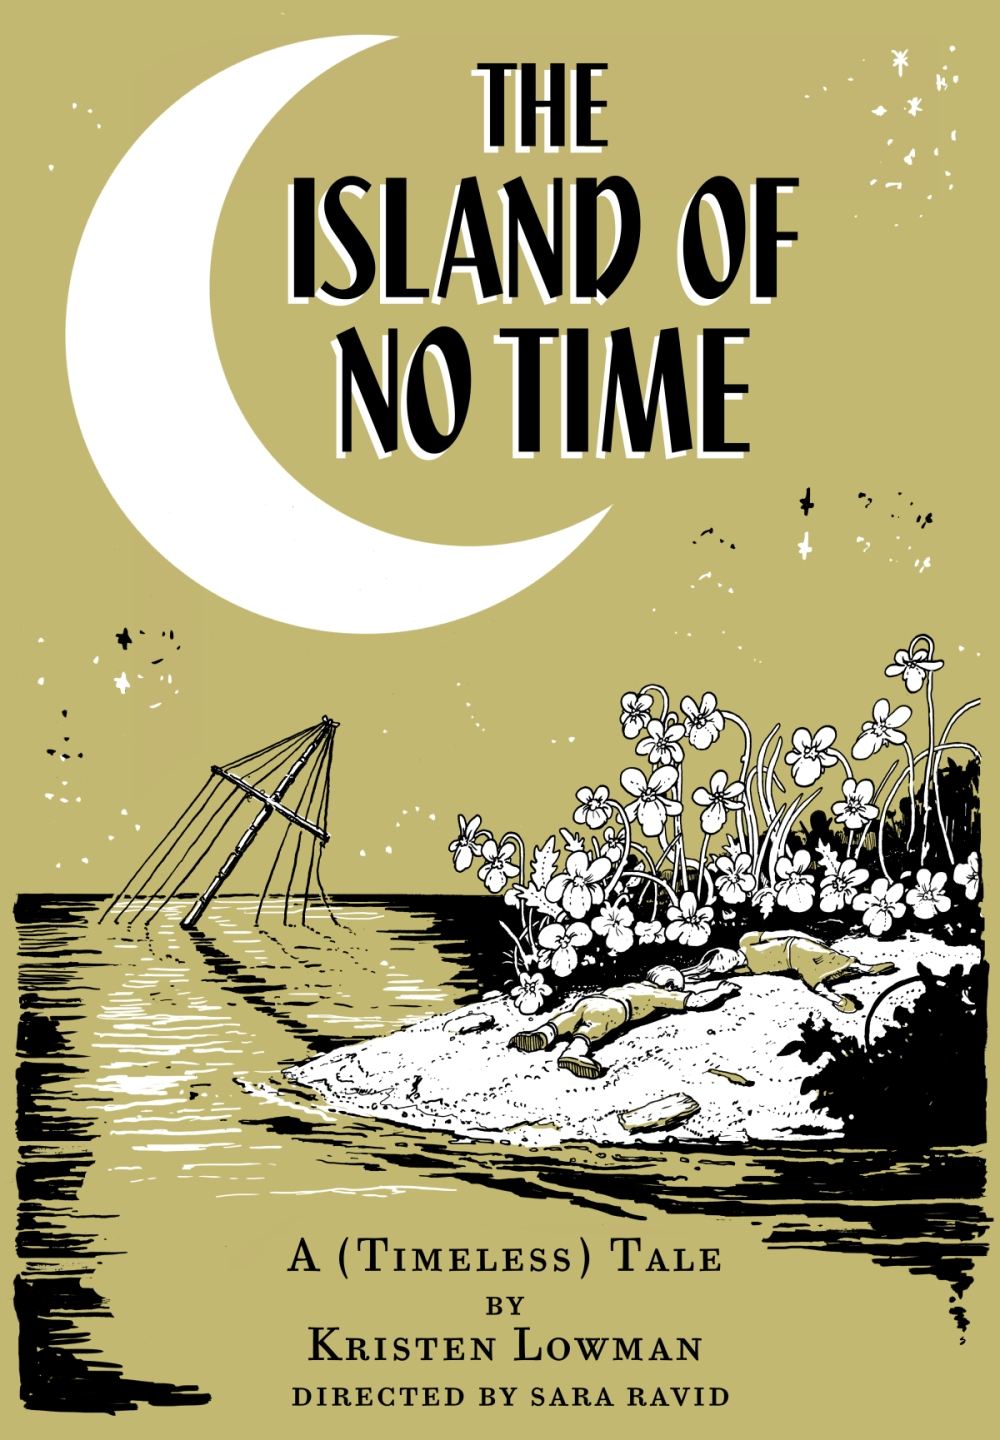 island-of-no-time-2-color.jpg